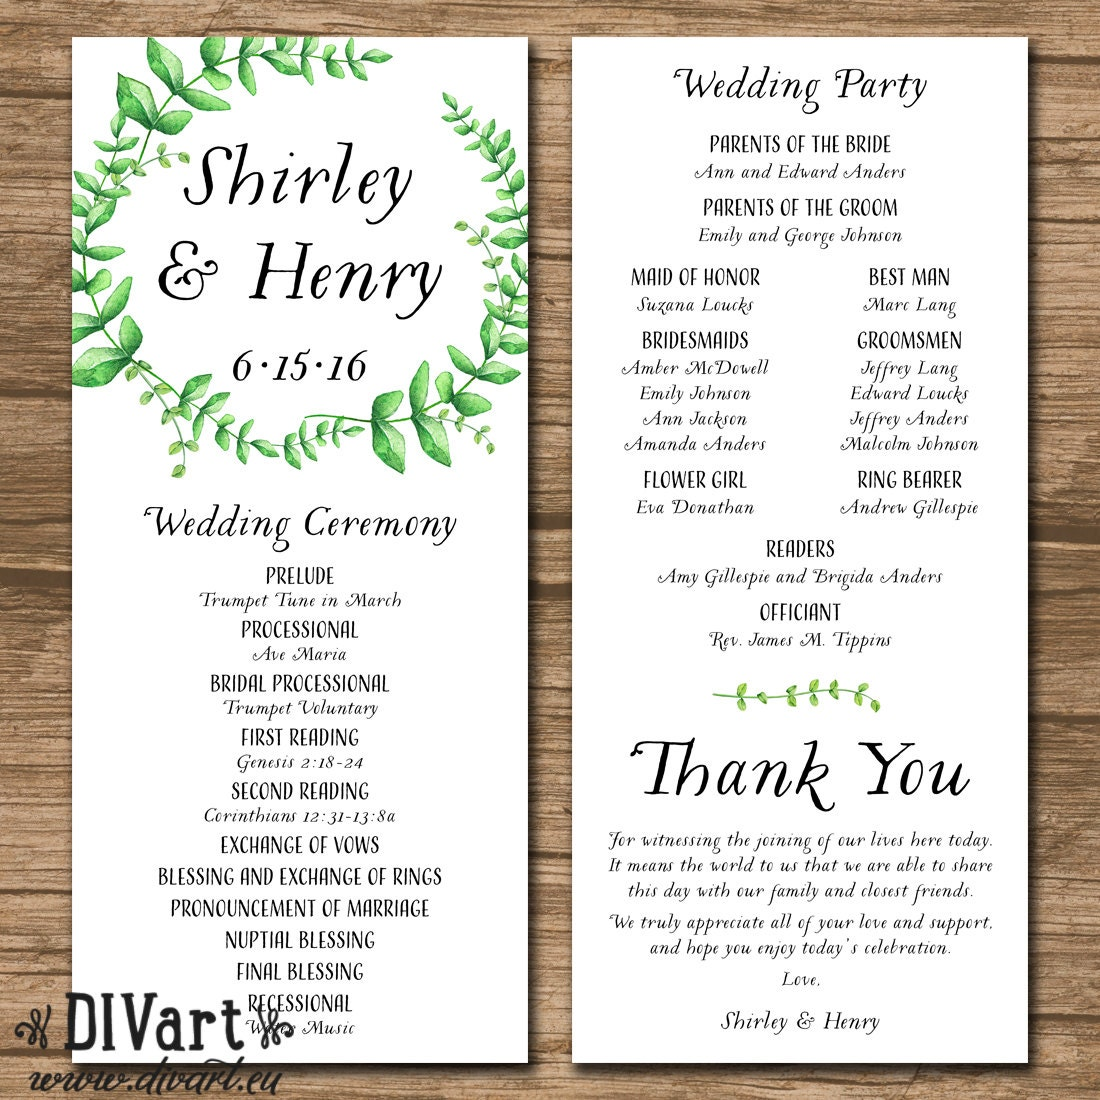 Wedding program ceremony program order of events wedding request a custom order and have something made just for you junglespirit Choice Image